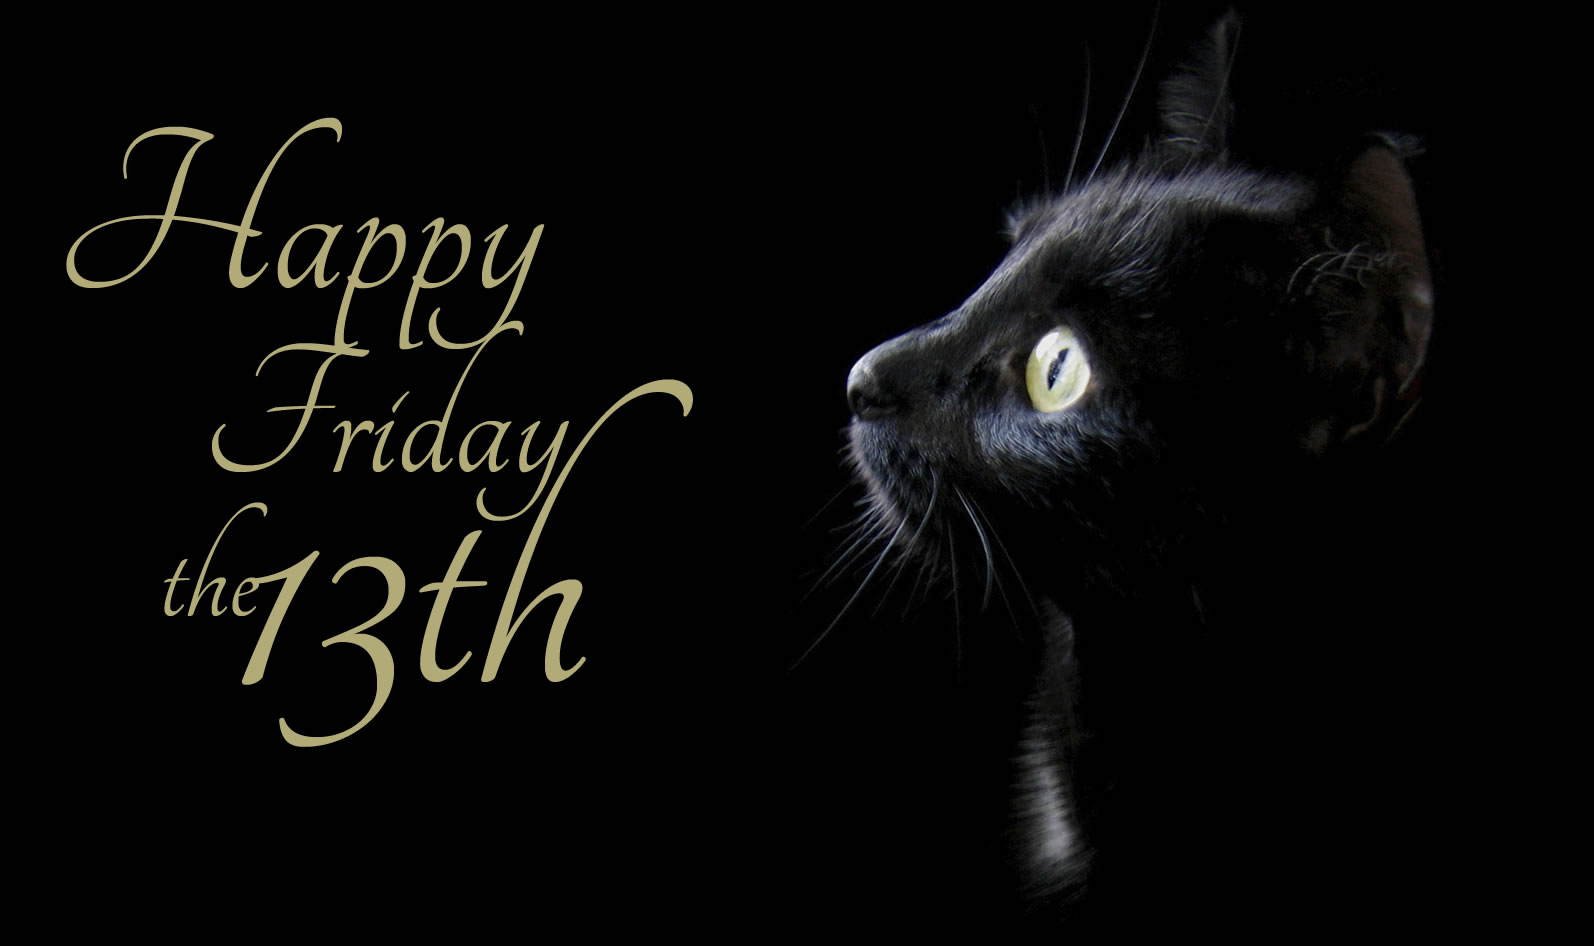 Quotes About Friday The 13th: Happy Friday The 13th Quotes. QuotesGram